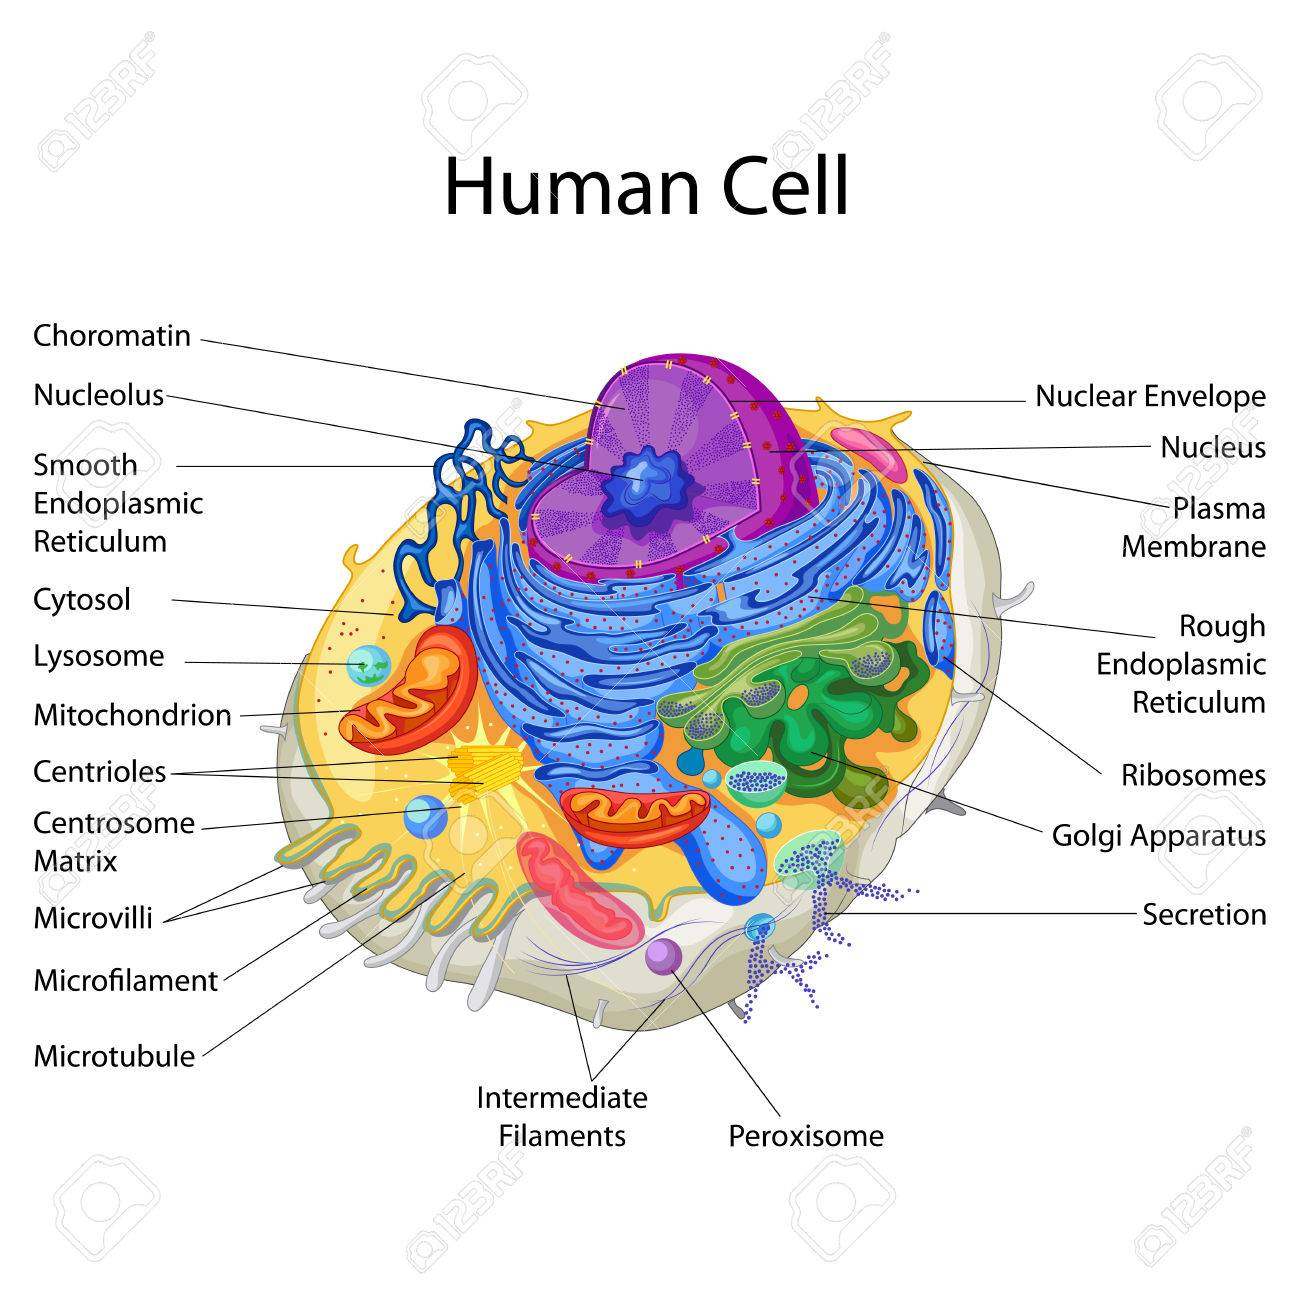 Education Chart of Biology for Human Cell Diagram - 80712764